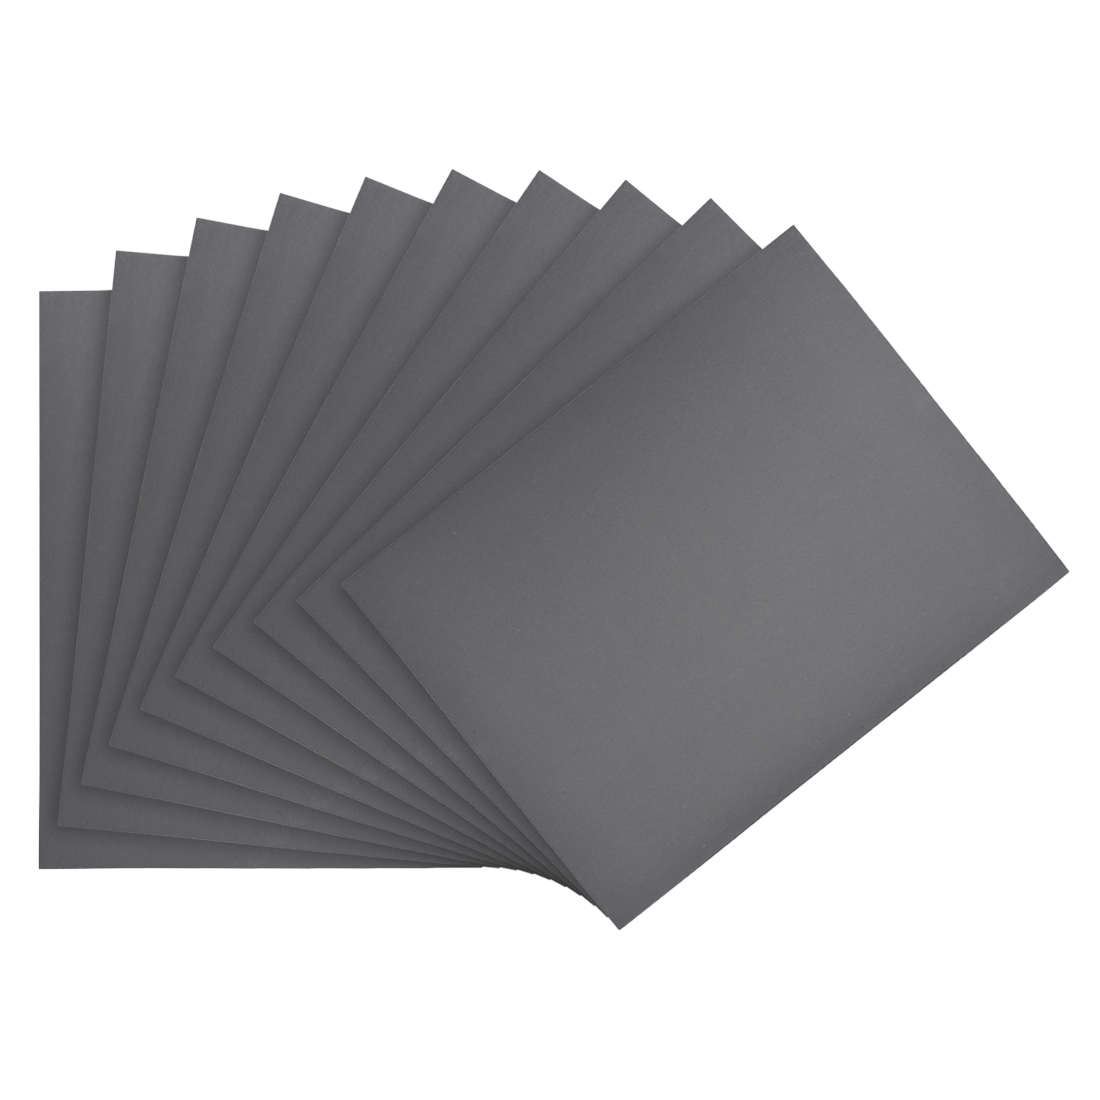 Waterproof Sandpaper, Wet Dry Sand Paper Grit of 2000, 11 x 9inch 10pcs